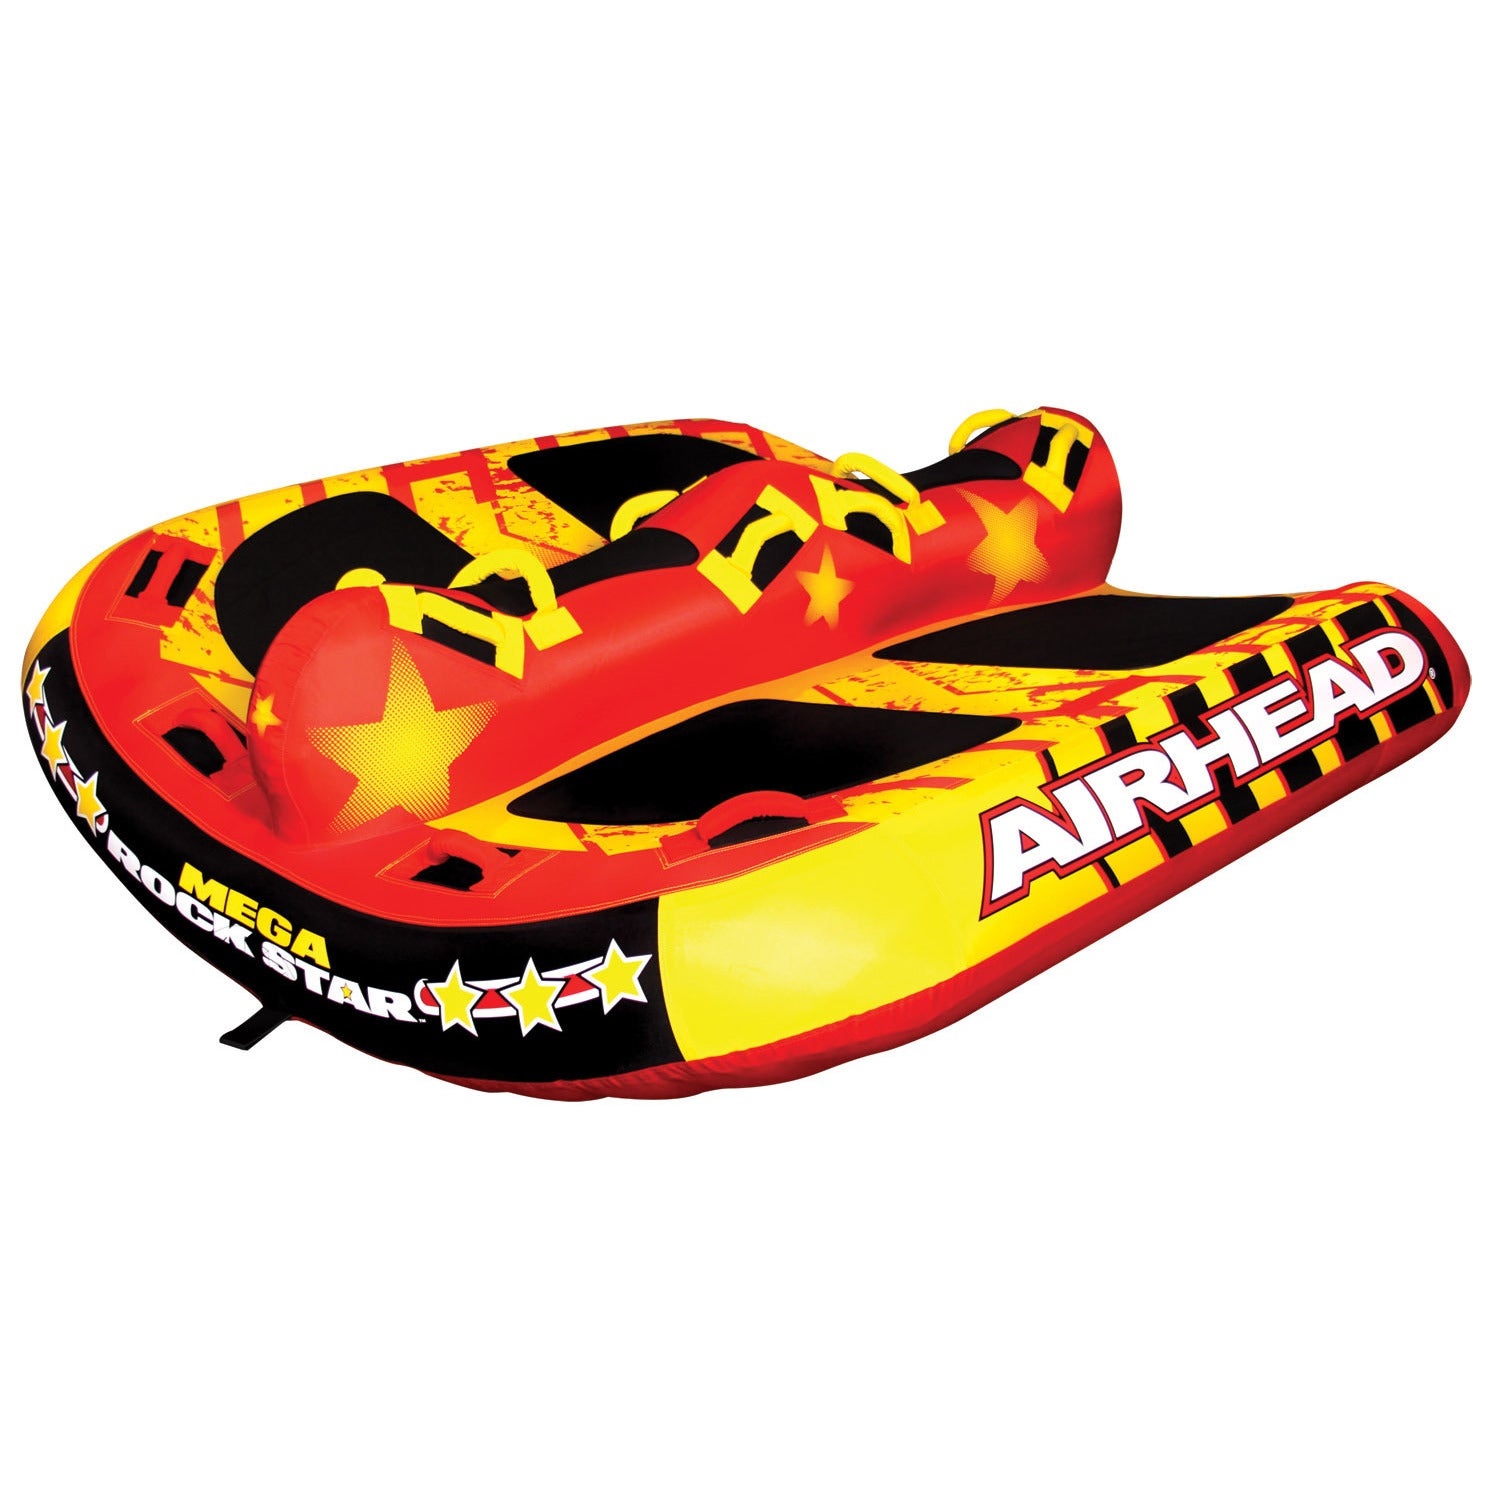 Airhead Mega Rock Star Multicolor PVC Inflatable Water Tu...